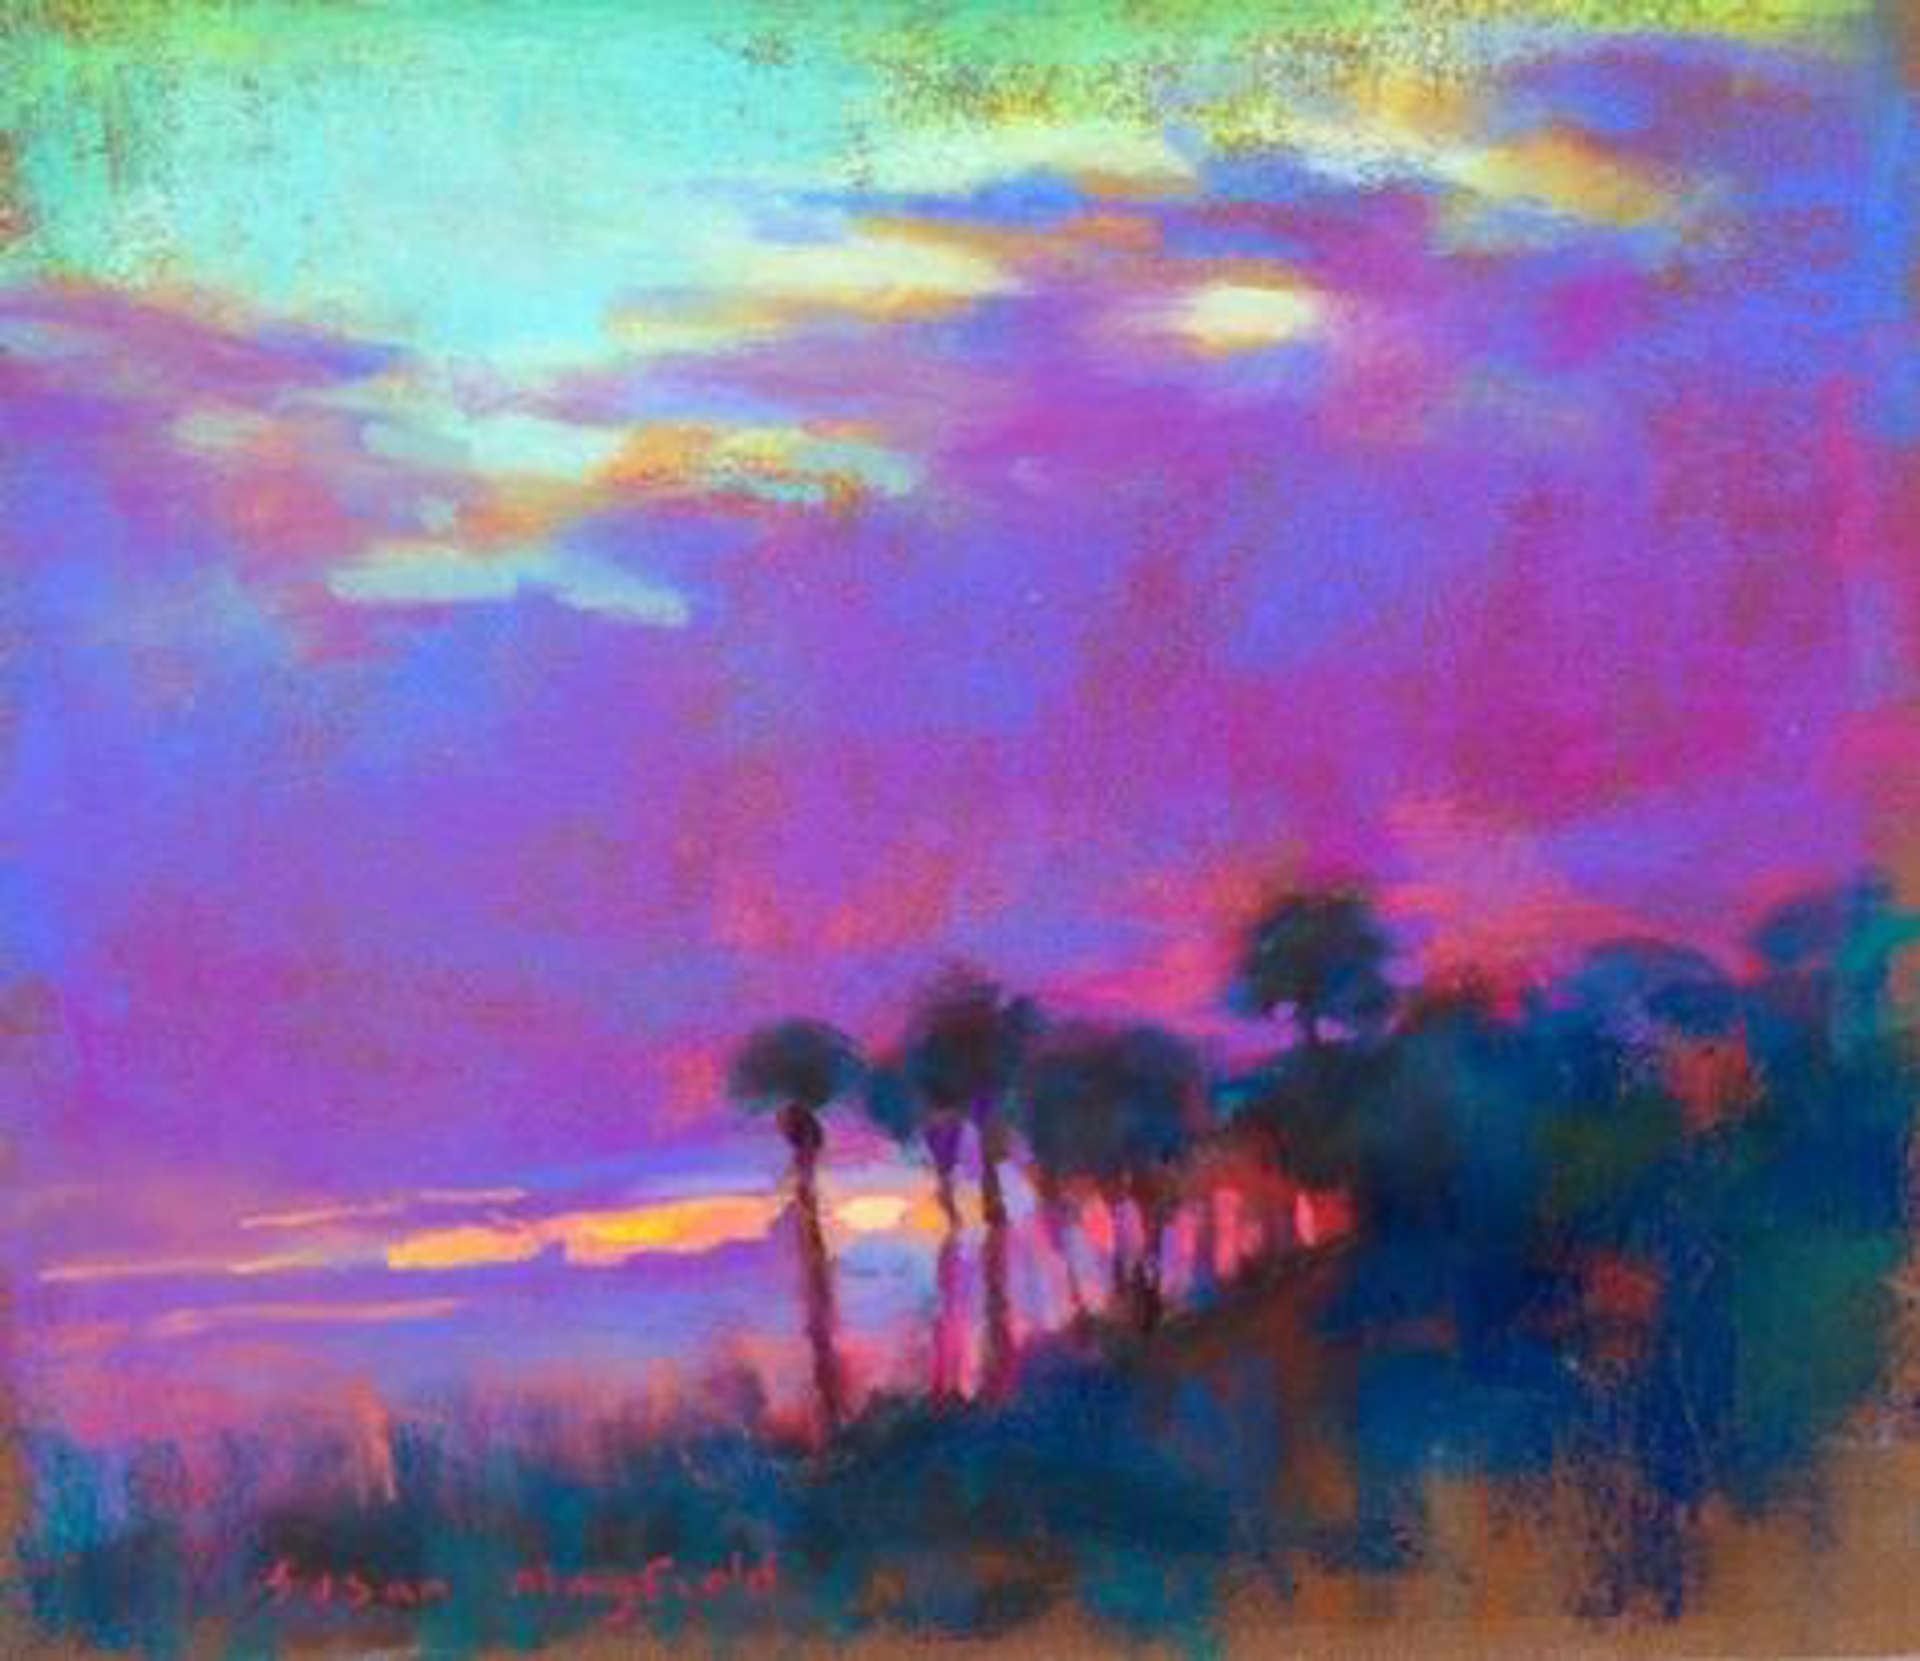 Violet Sky by Susan Mayfield